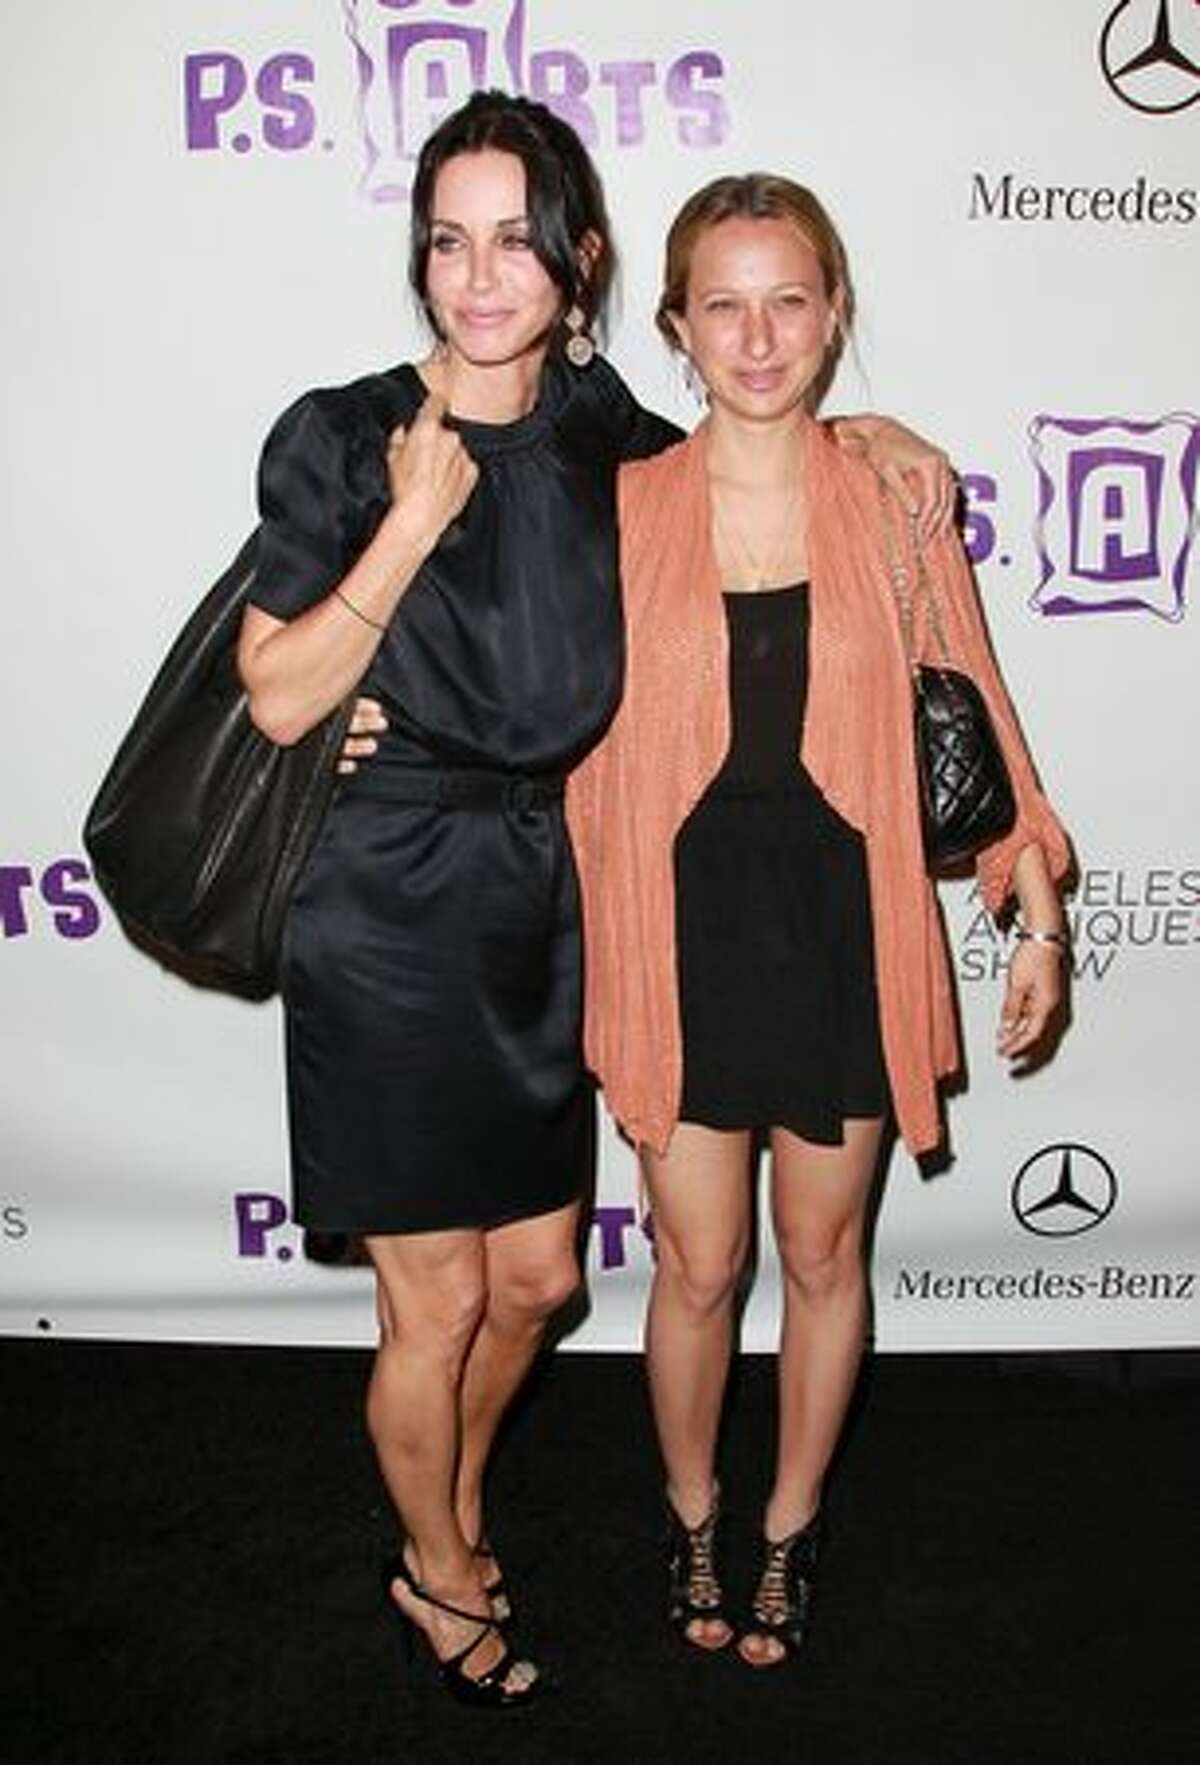 Actress Courteney Cox (L) and Jennifer Meyer-Maguire attend the 15th Annual Los Angeles Antique Show Opening Night Preview Party benefiting P.S. ARTS at Barker Hanger on April 21, 2010 in Santa Monica, California.